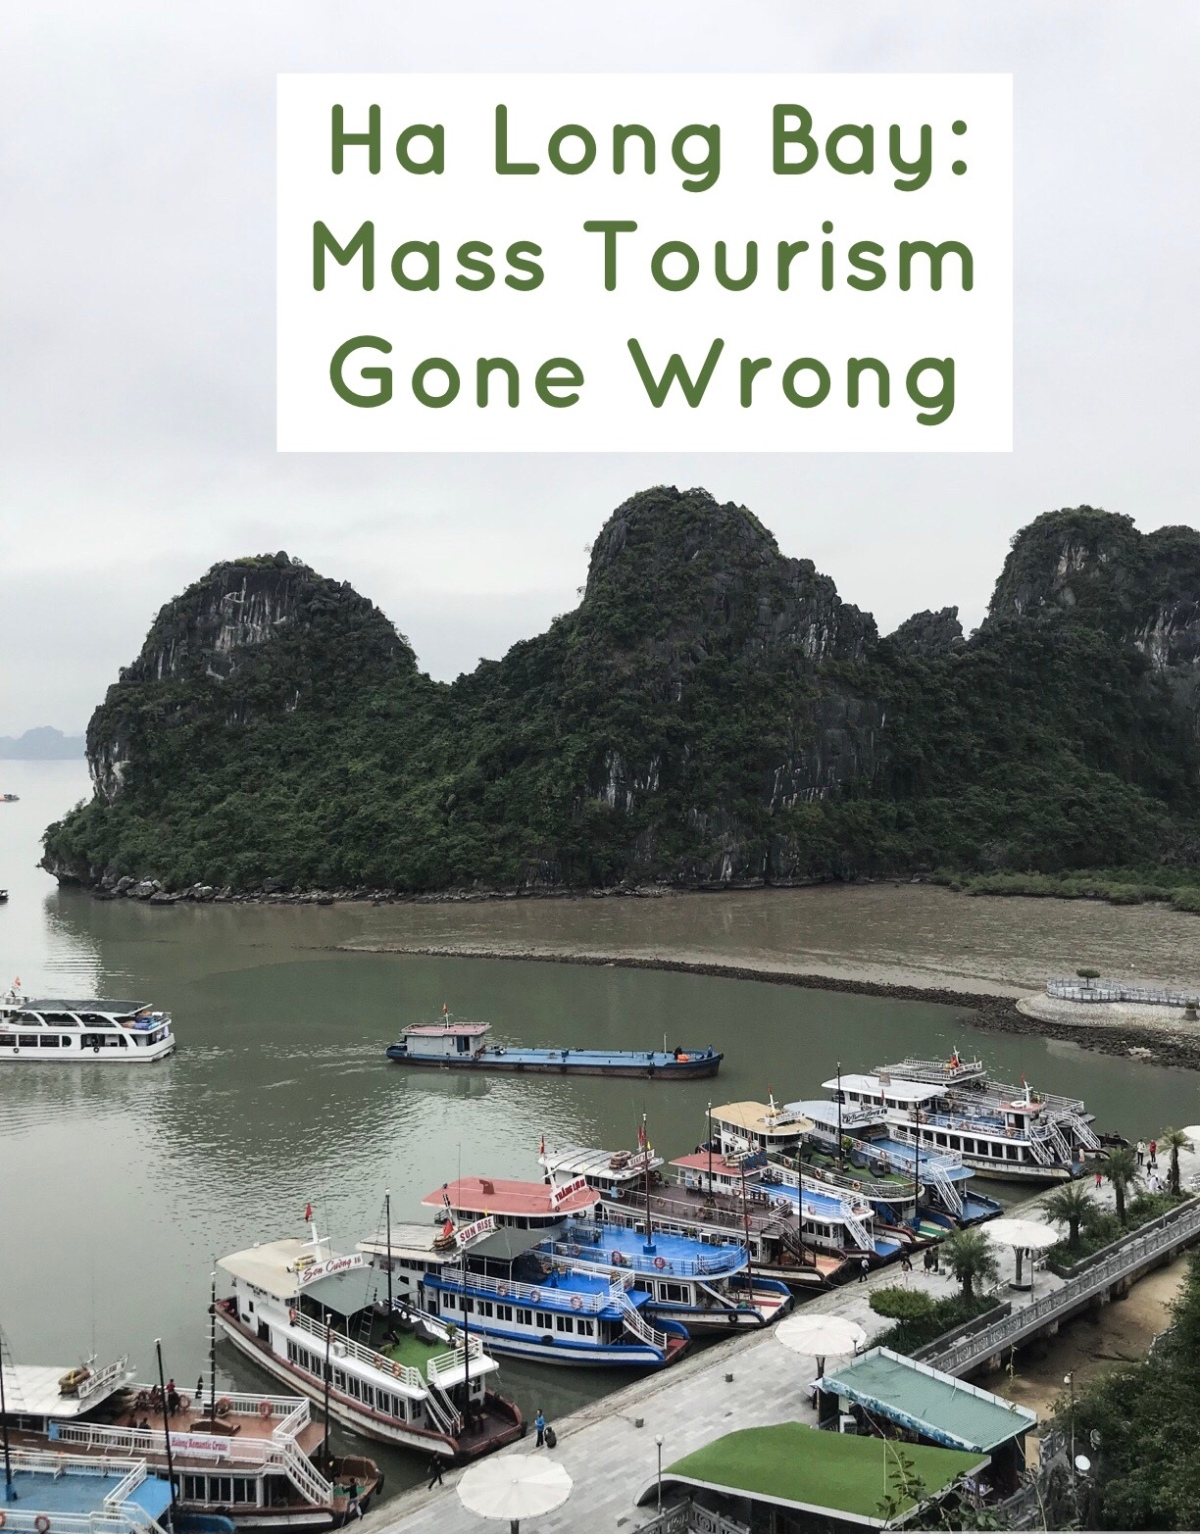 Ha Long Bay: Mass Tourism Gone Wrong